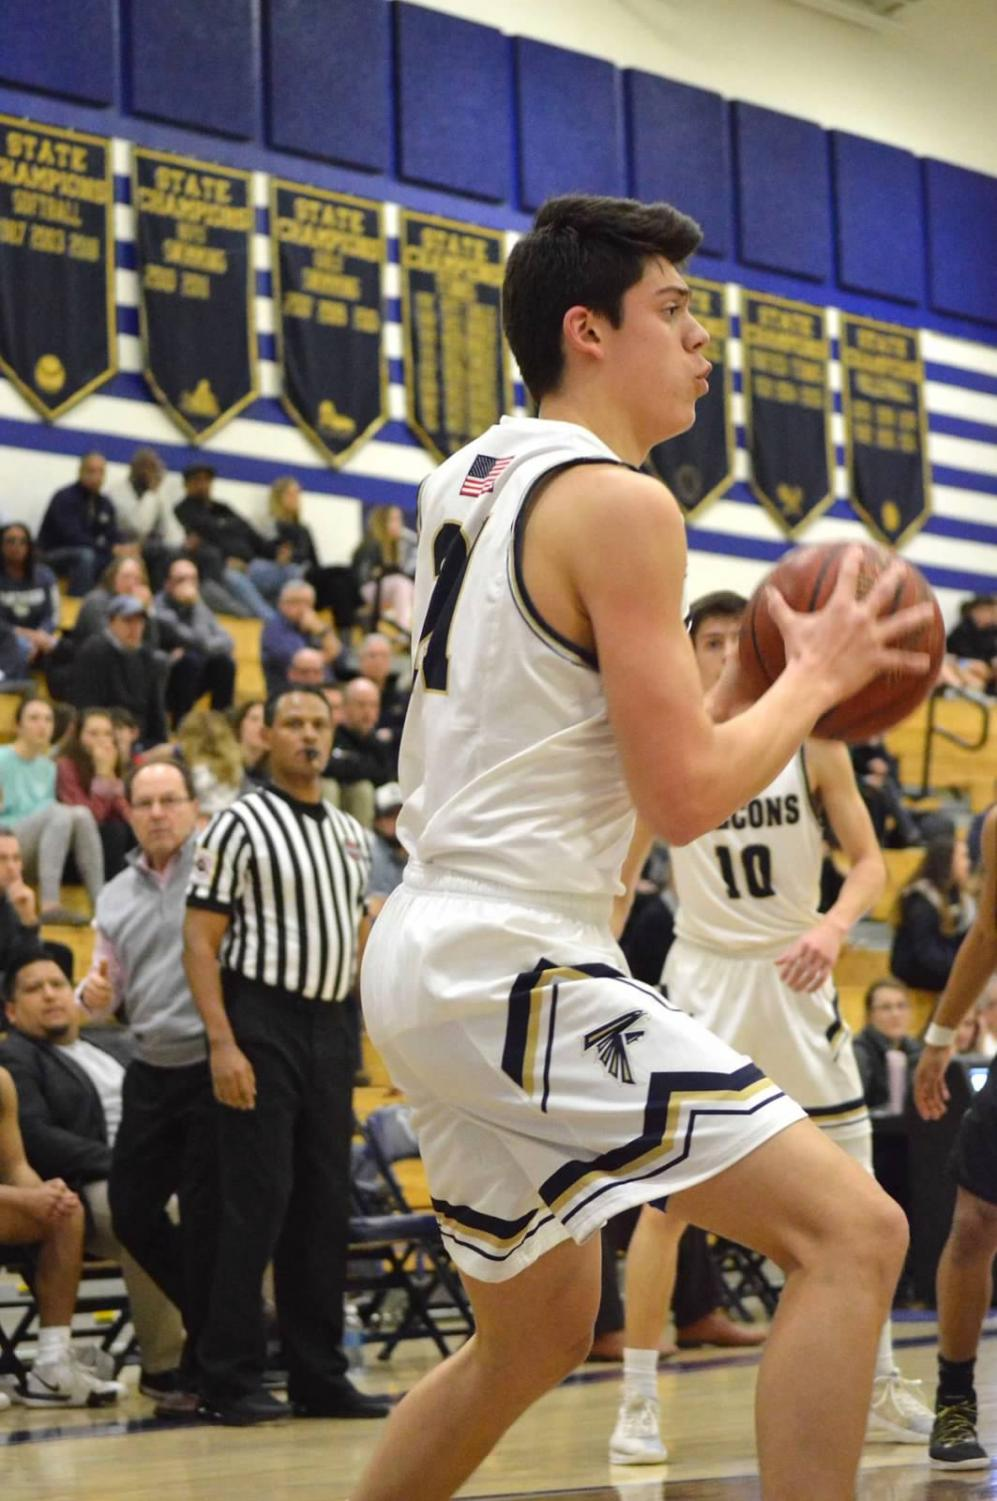 """Senior Orion Young receives a pass and goes up for the shot. As one of the premier bigs, Young is one of SPHS' many hard working weapons. """"We have a great group of guys who will push each other every day,"""" senior Eric Bloom said."""